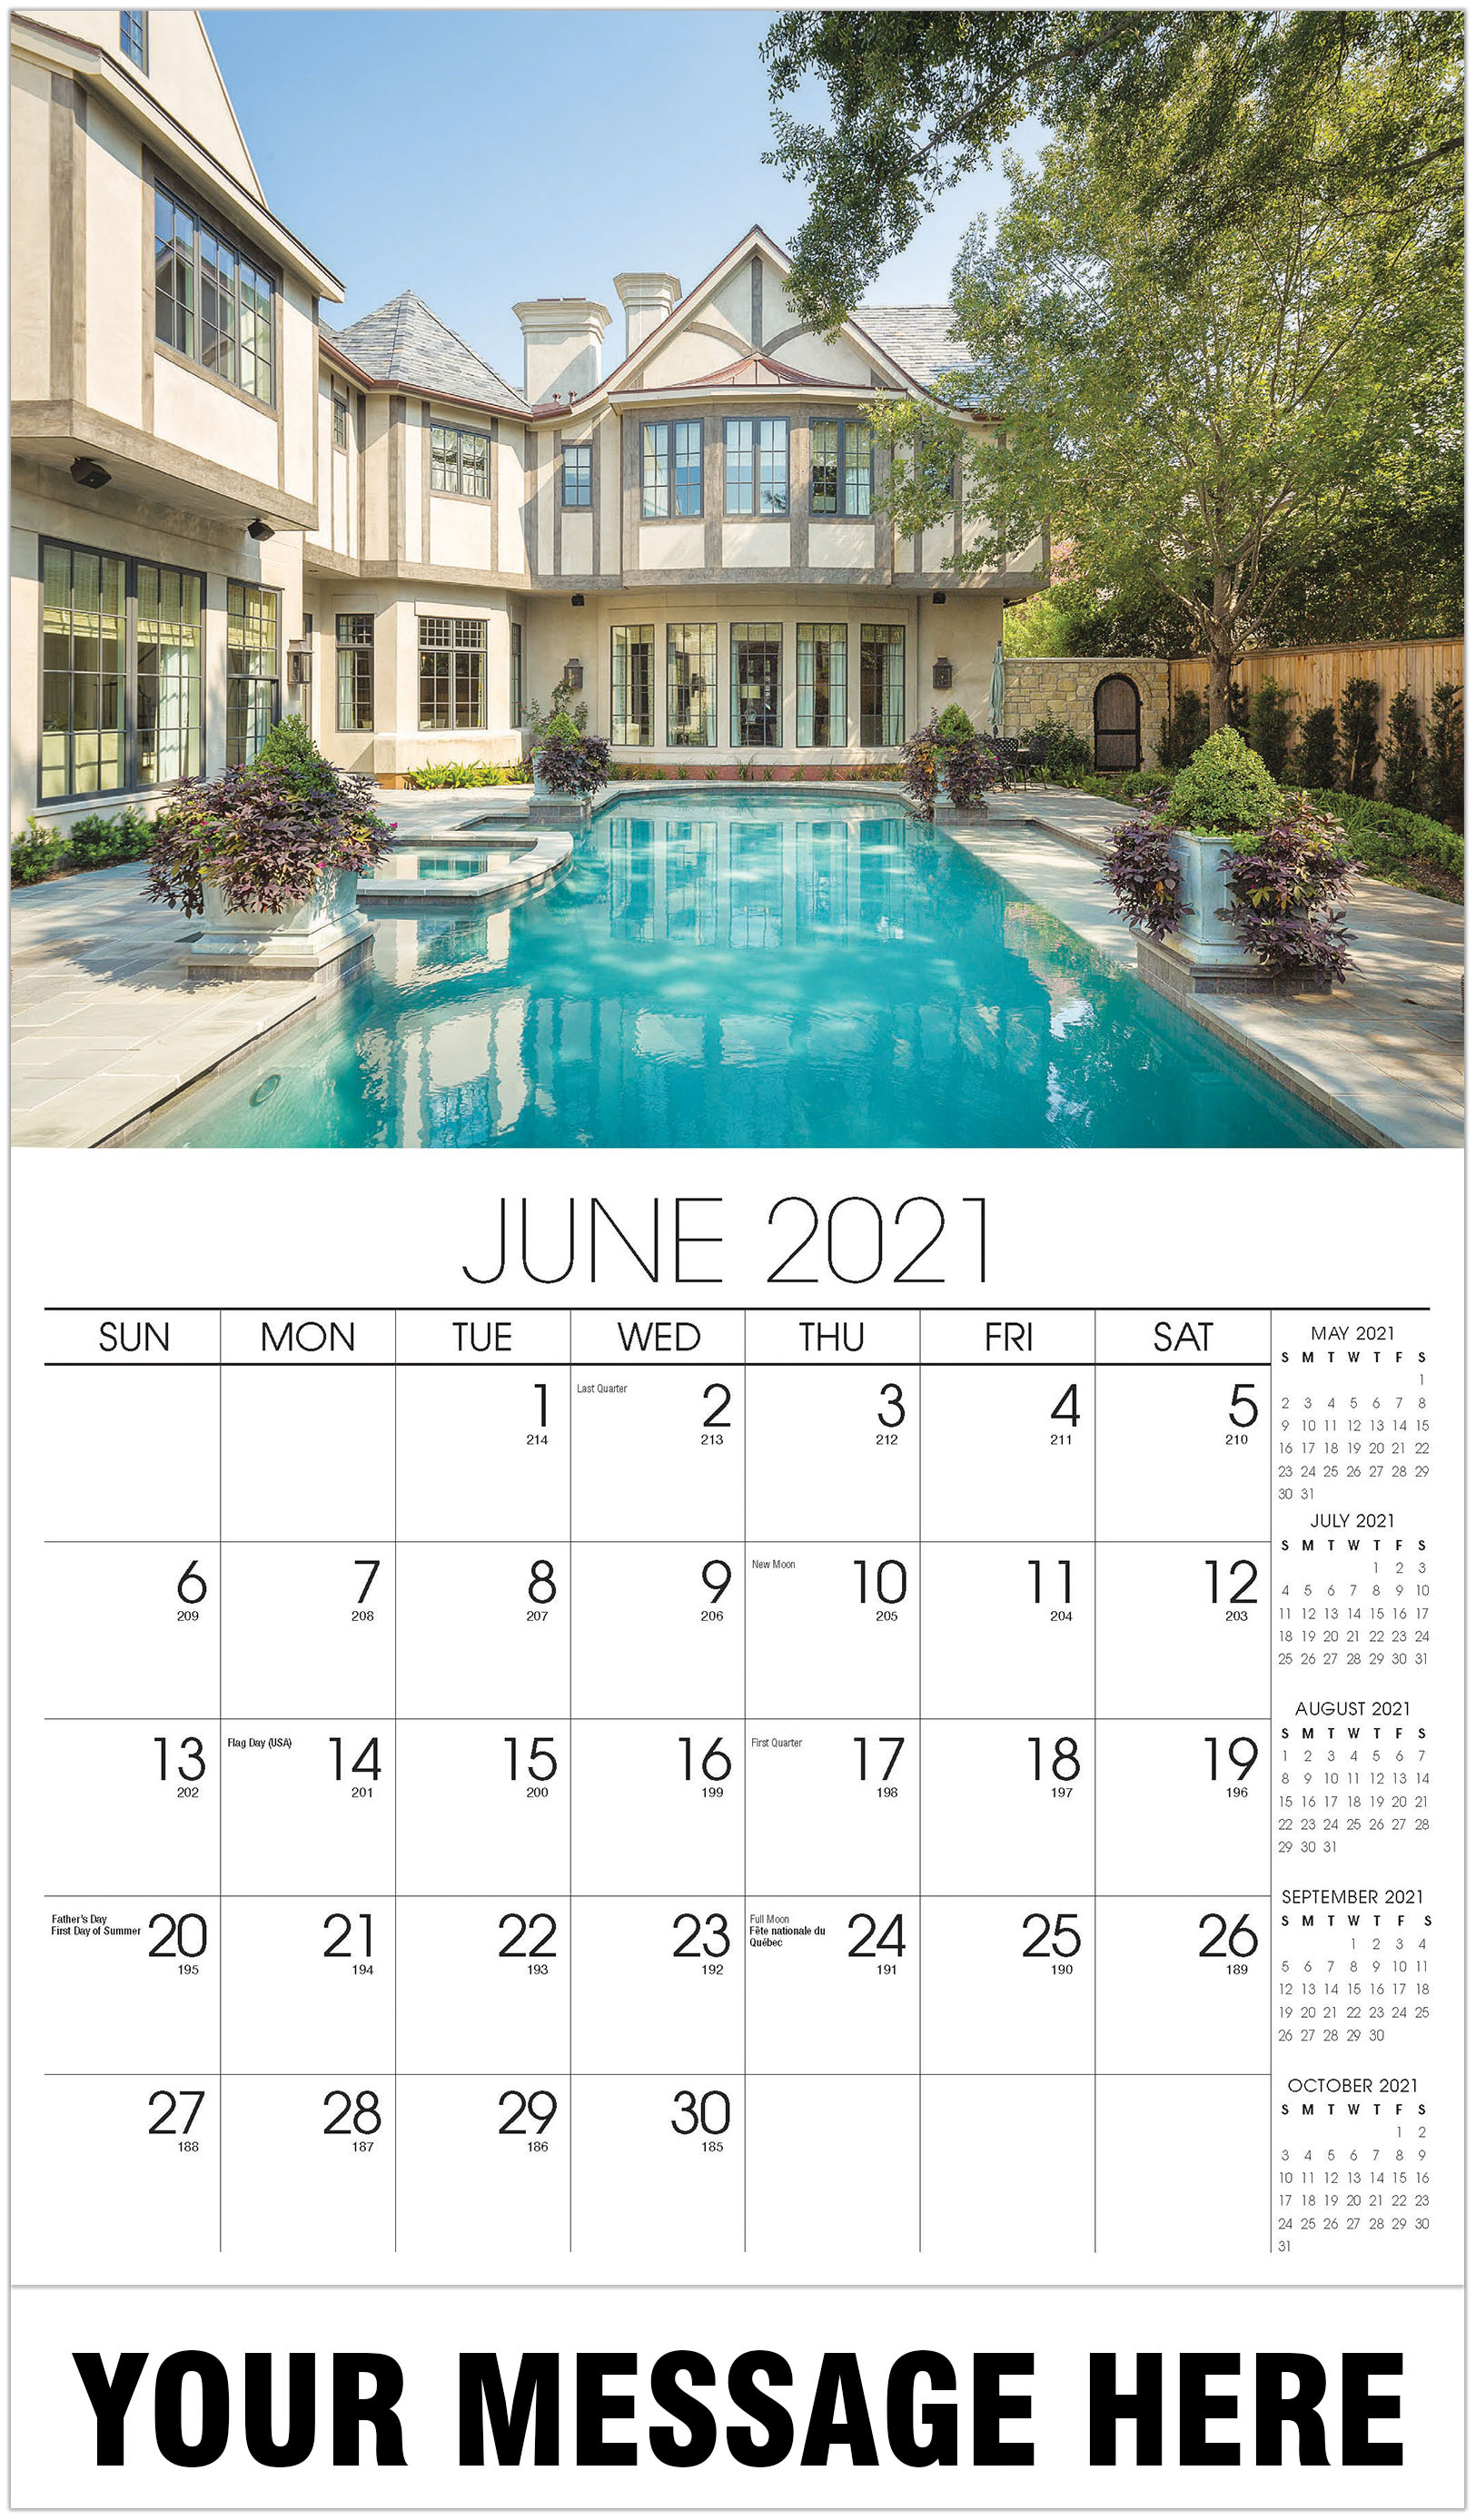 Luxury Homes Calendar - June - Homes 2021 Promotional Calendar